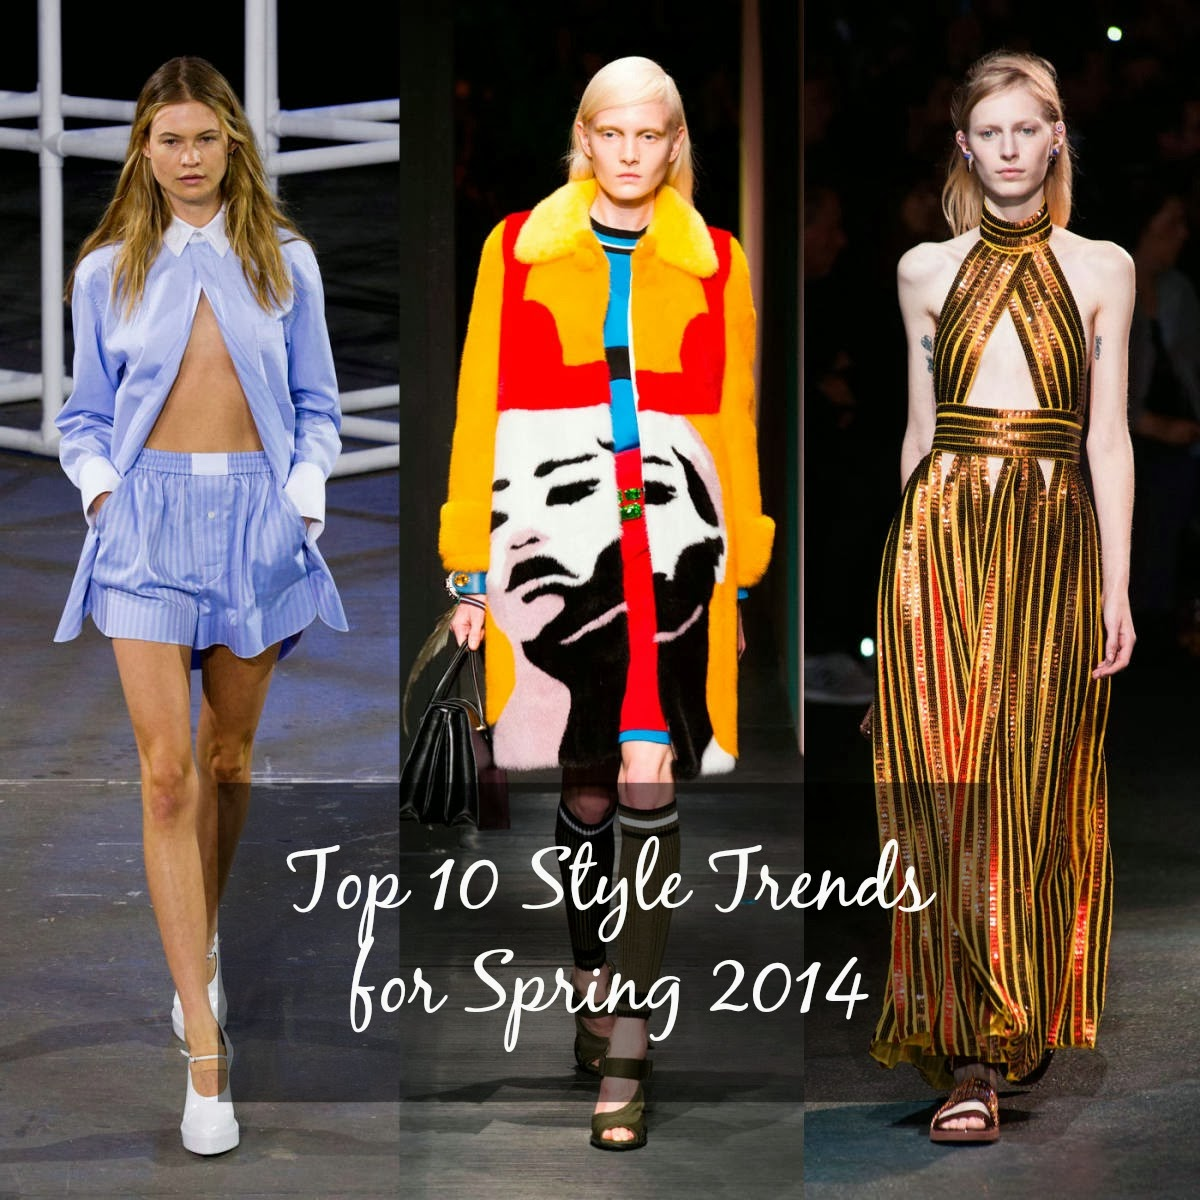 Fashion from the Hart : Top 5 Style Trends for Spring 5